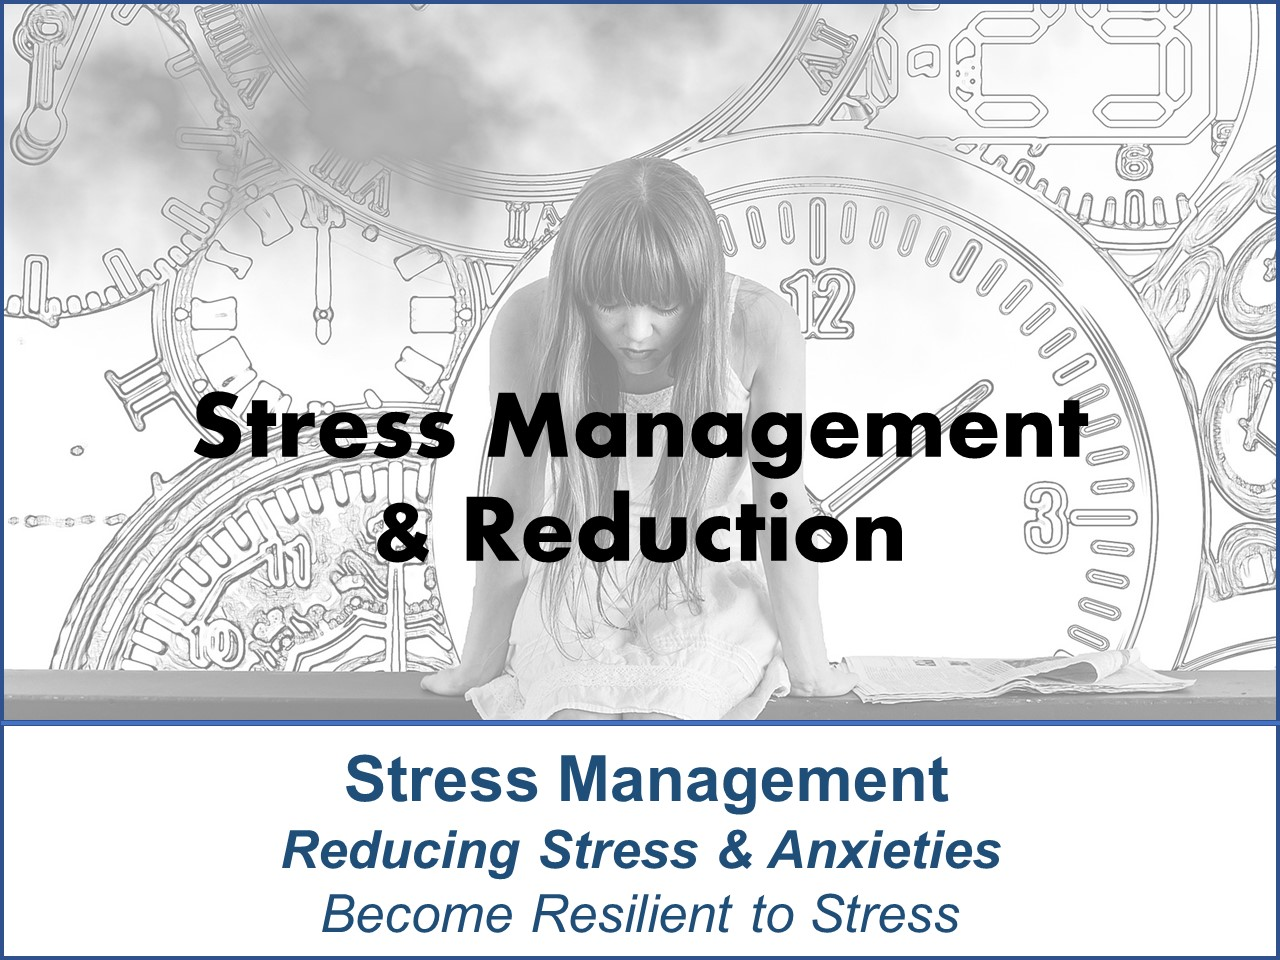 Stress Management & Reduction ALB Special!